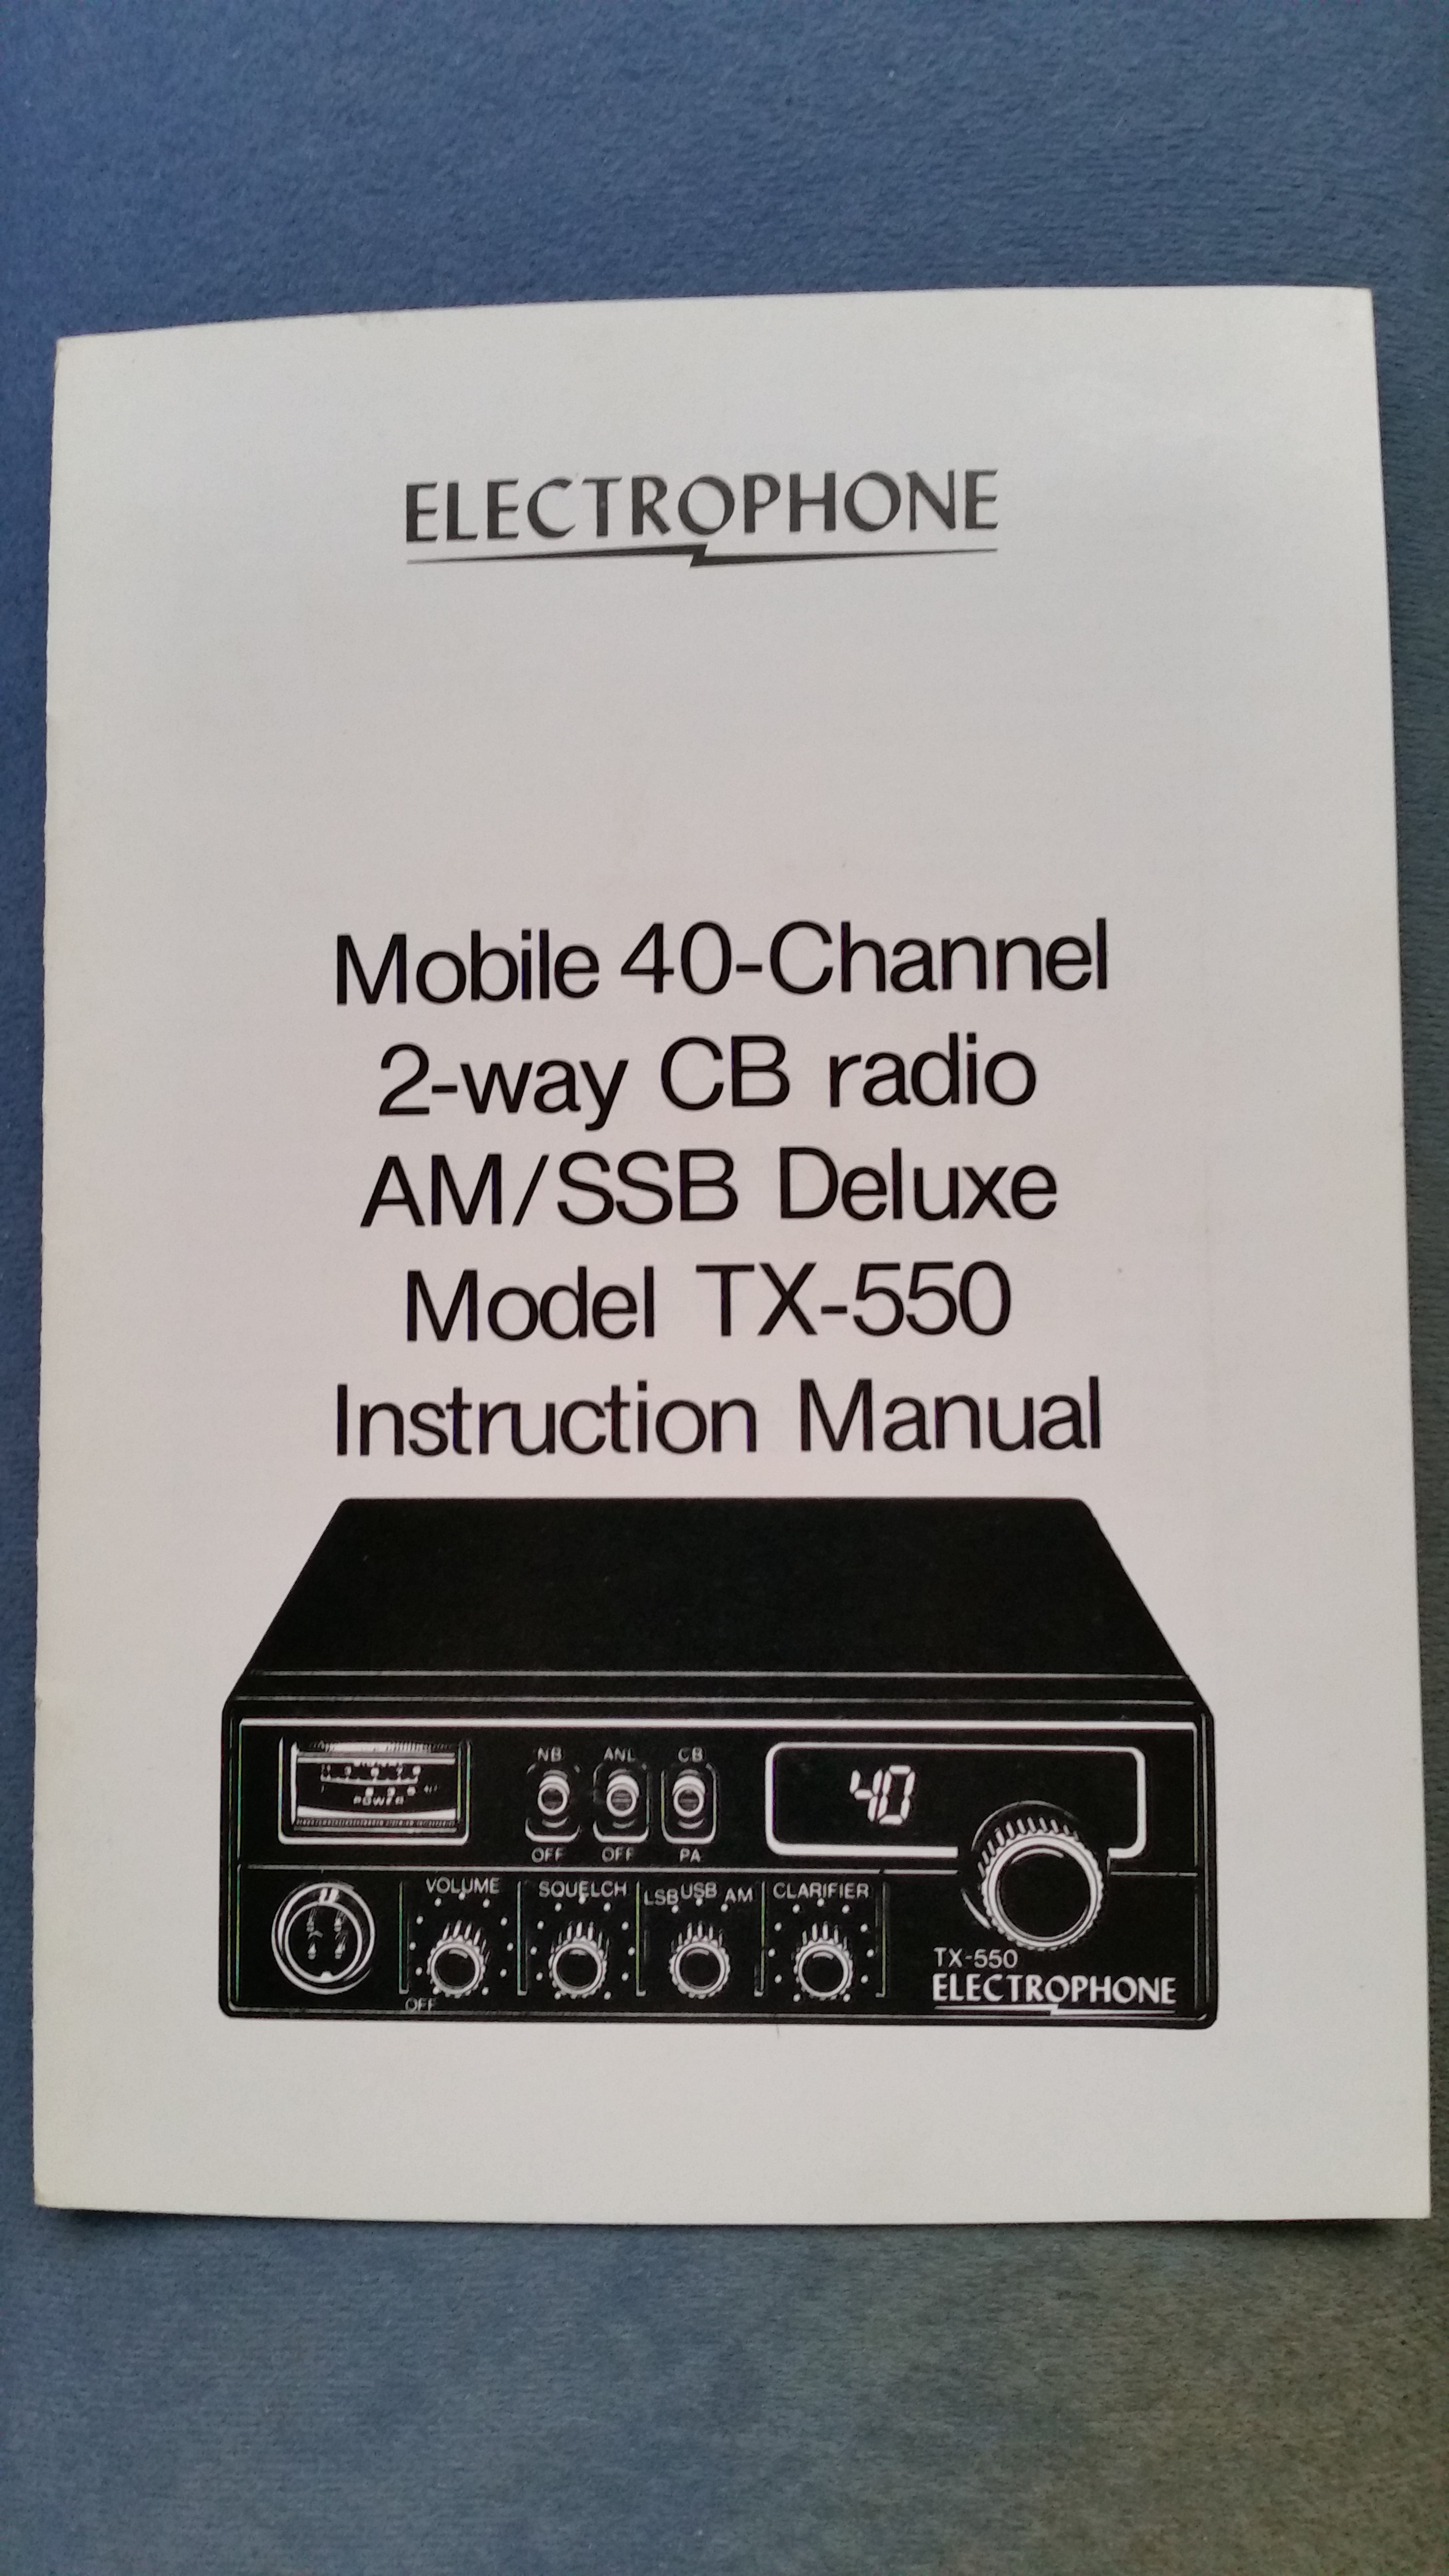 Electrophone Mobile 40 Channel 2 way CB Radio AM/SSB Deluxe Model TX-550  Instruction Manual